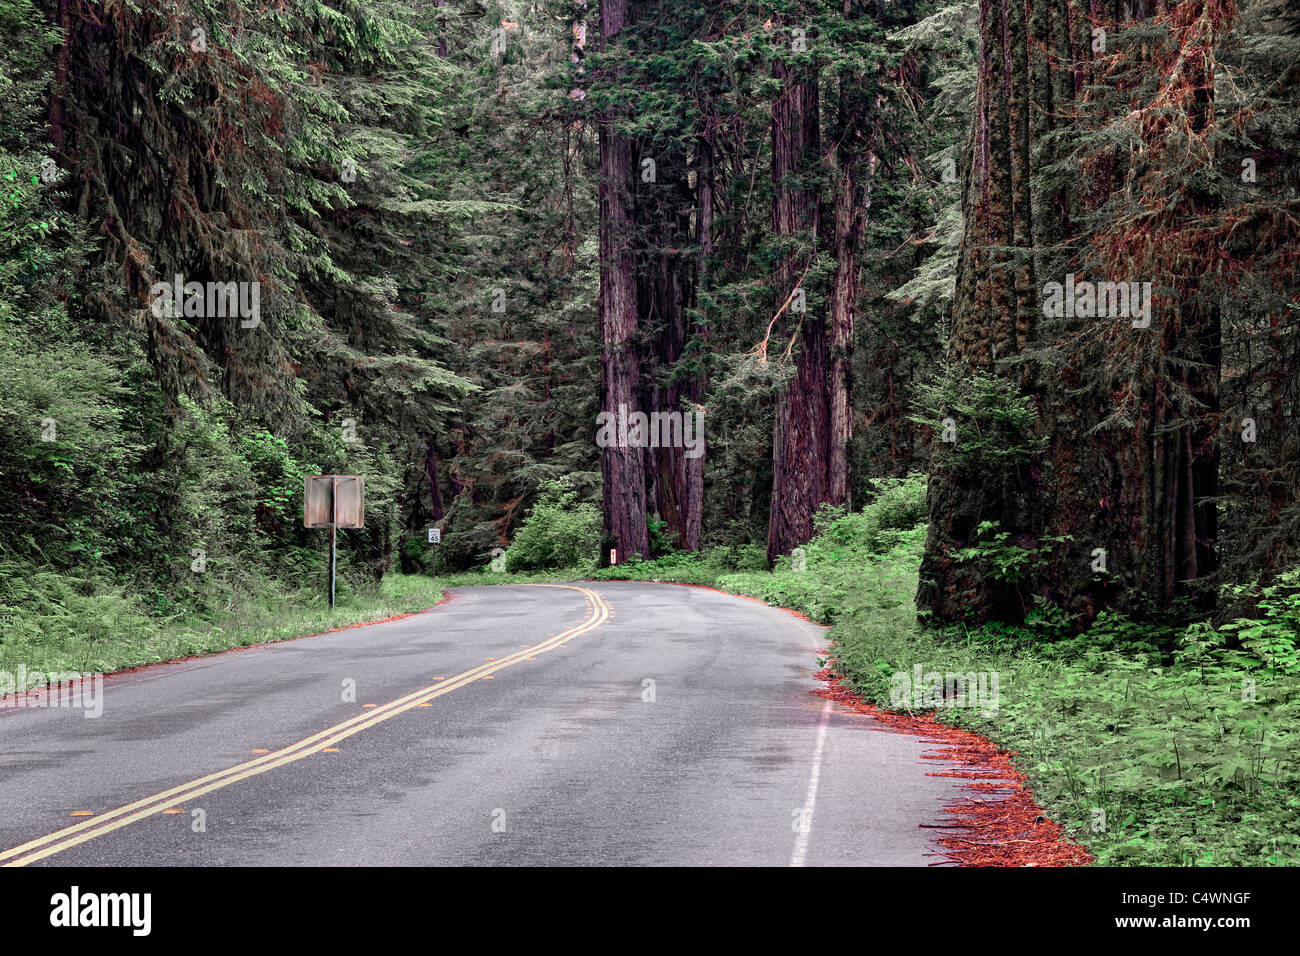 Groves of giant redwood trees along the Drury Scenic Parkway in California's Prairie Creek Redwoods State and - Stock Image